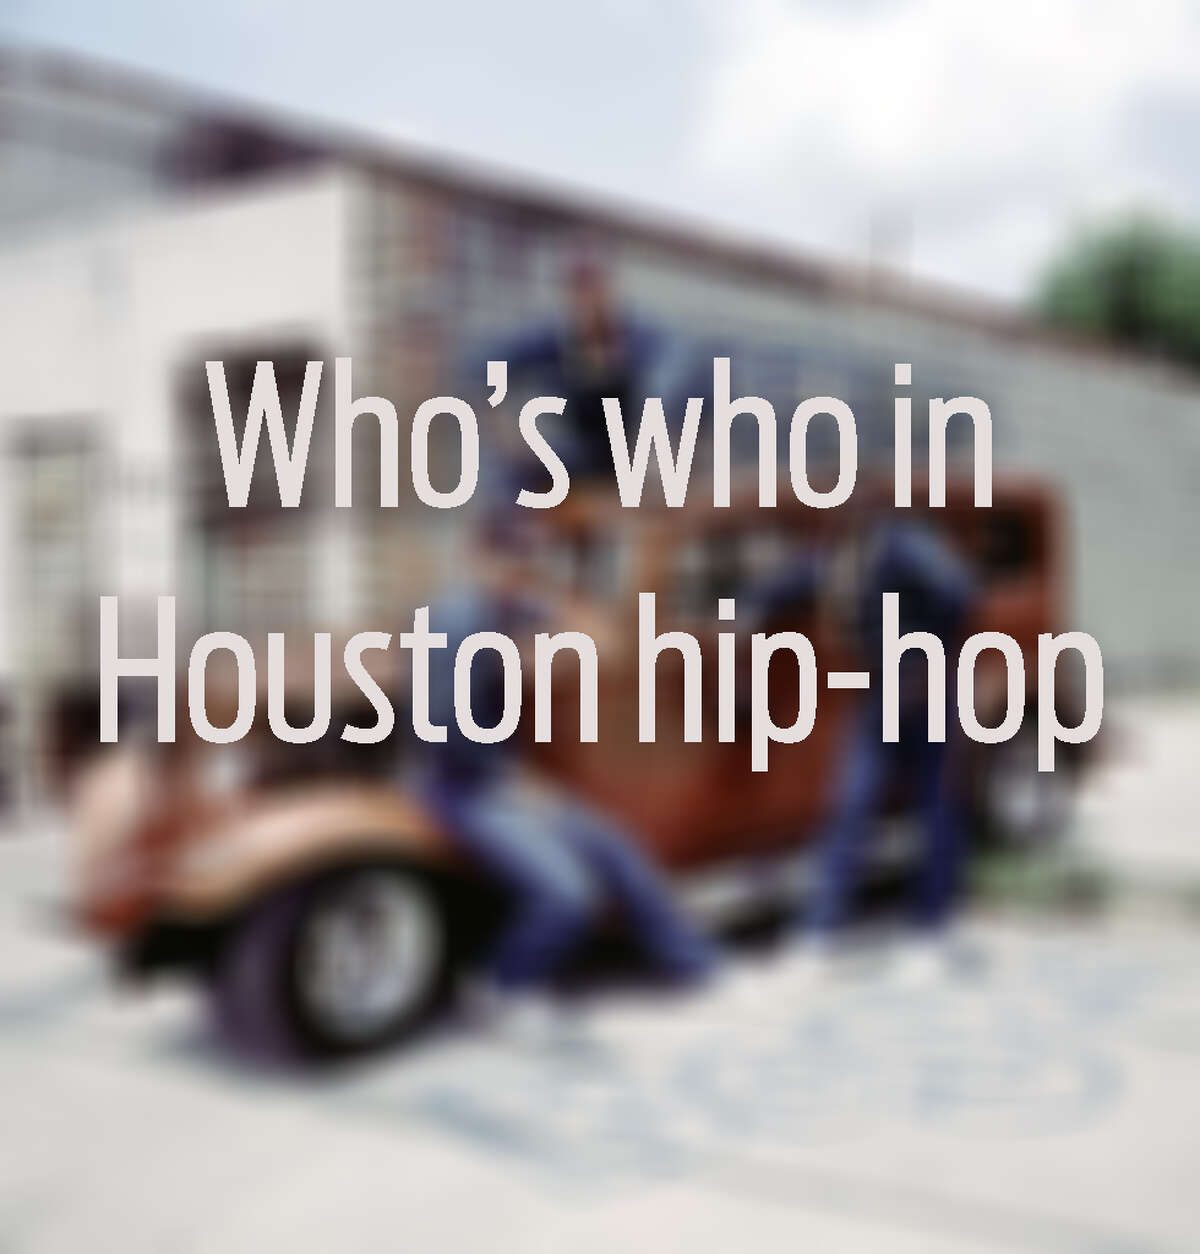 Get to know the major figures in Houston hip-hop history.